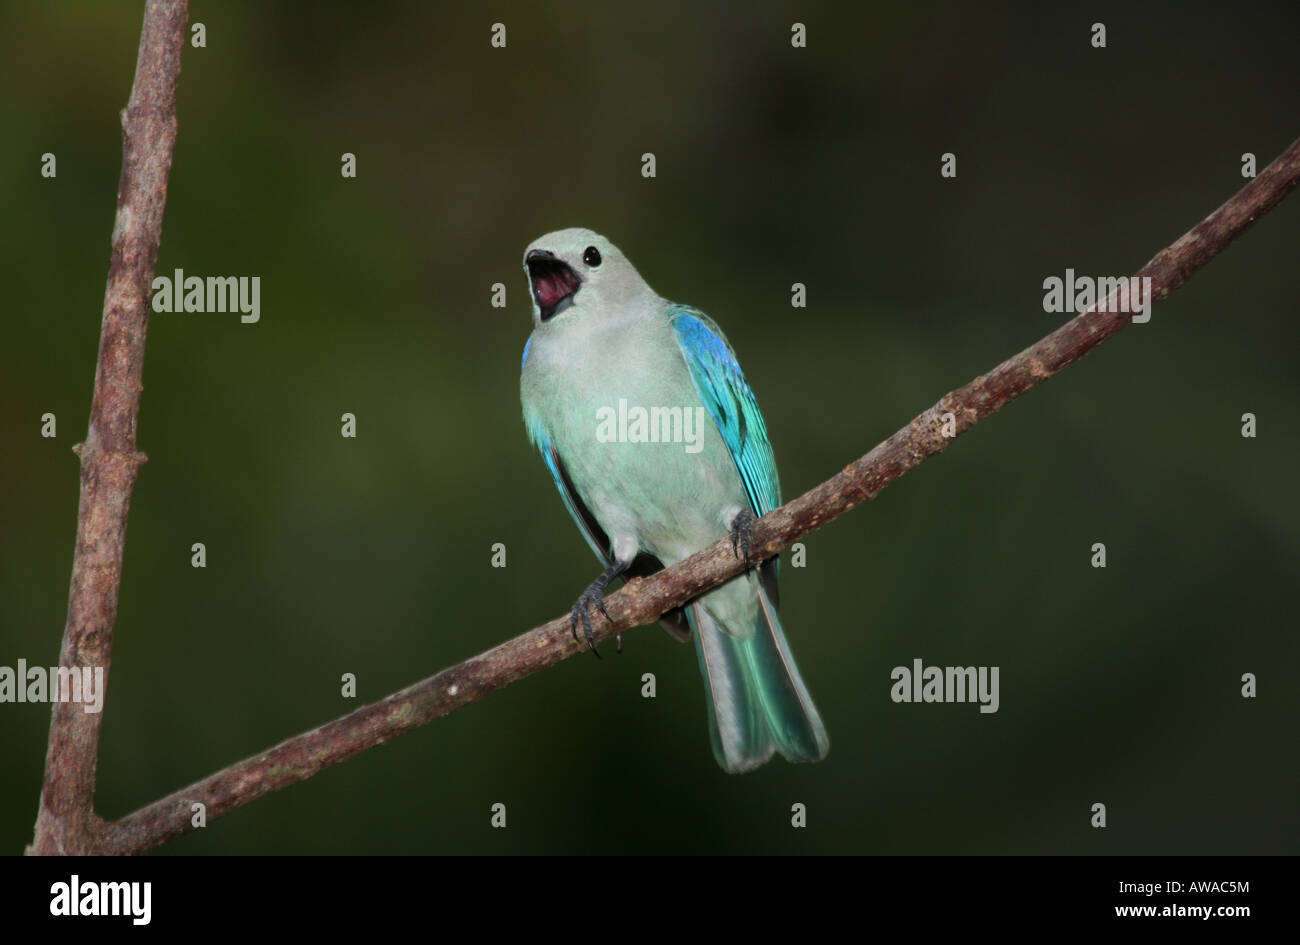 Blue-gray Tanager, Thraupis episcopus, in Soberania national park, Republic of Panama. - Stock Image